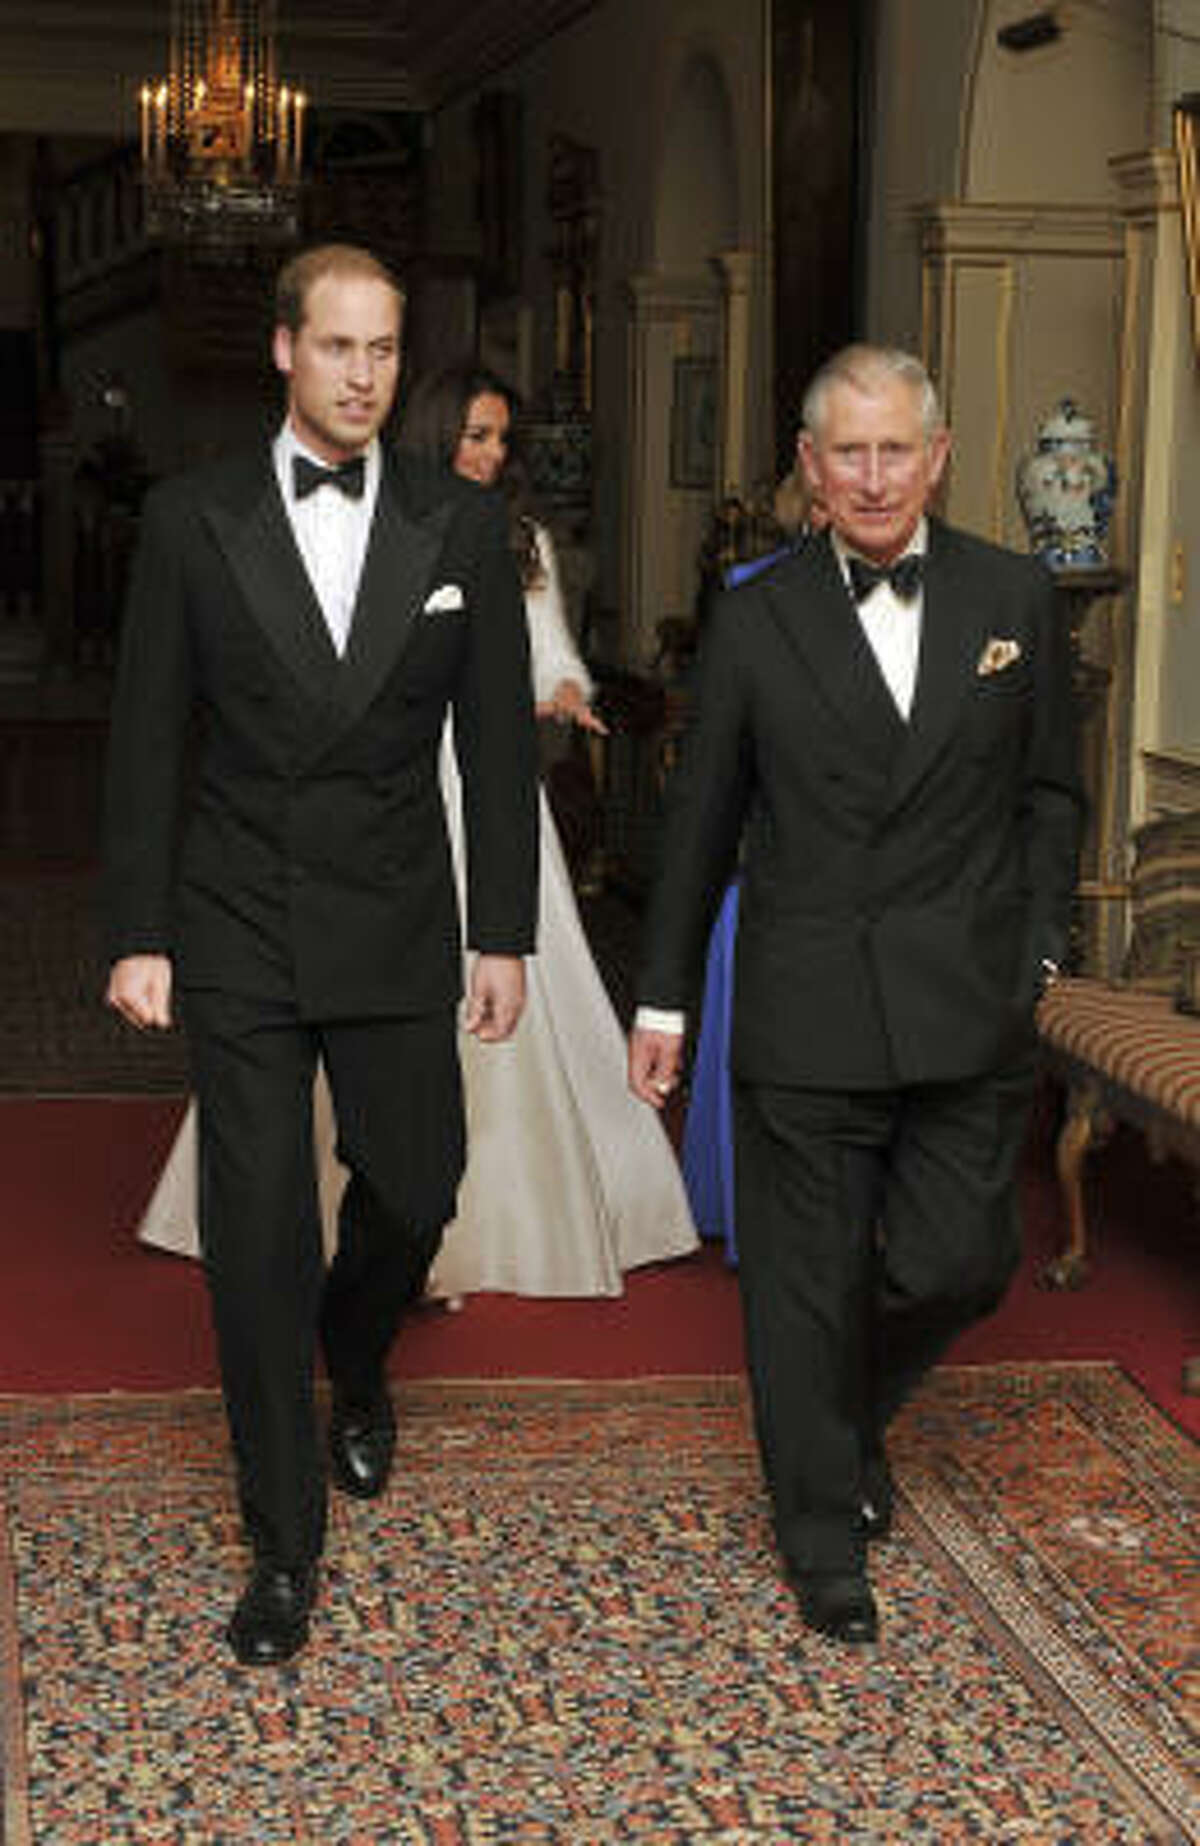 Prince William trades in his military ensemble for a dapper tux as he, his father, wife Kate, and step-mother Camilla leave for a post-wedding celebration at Buckingham Palace.